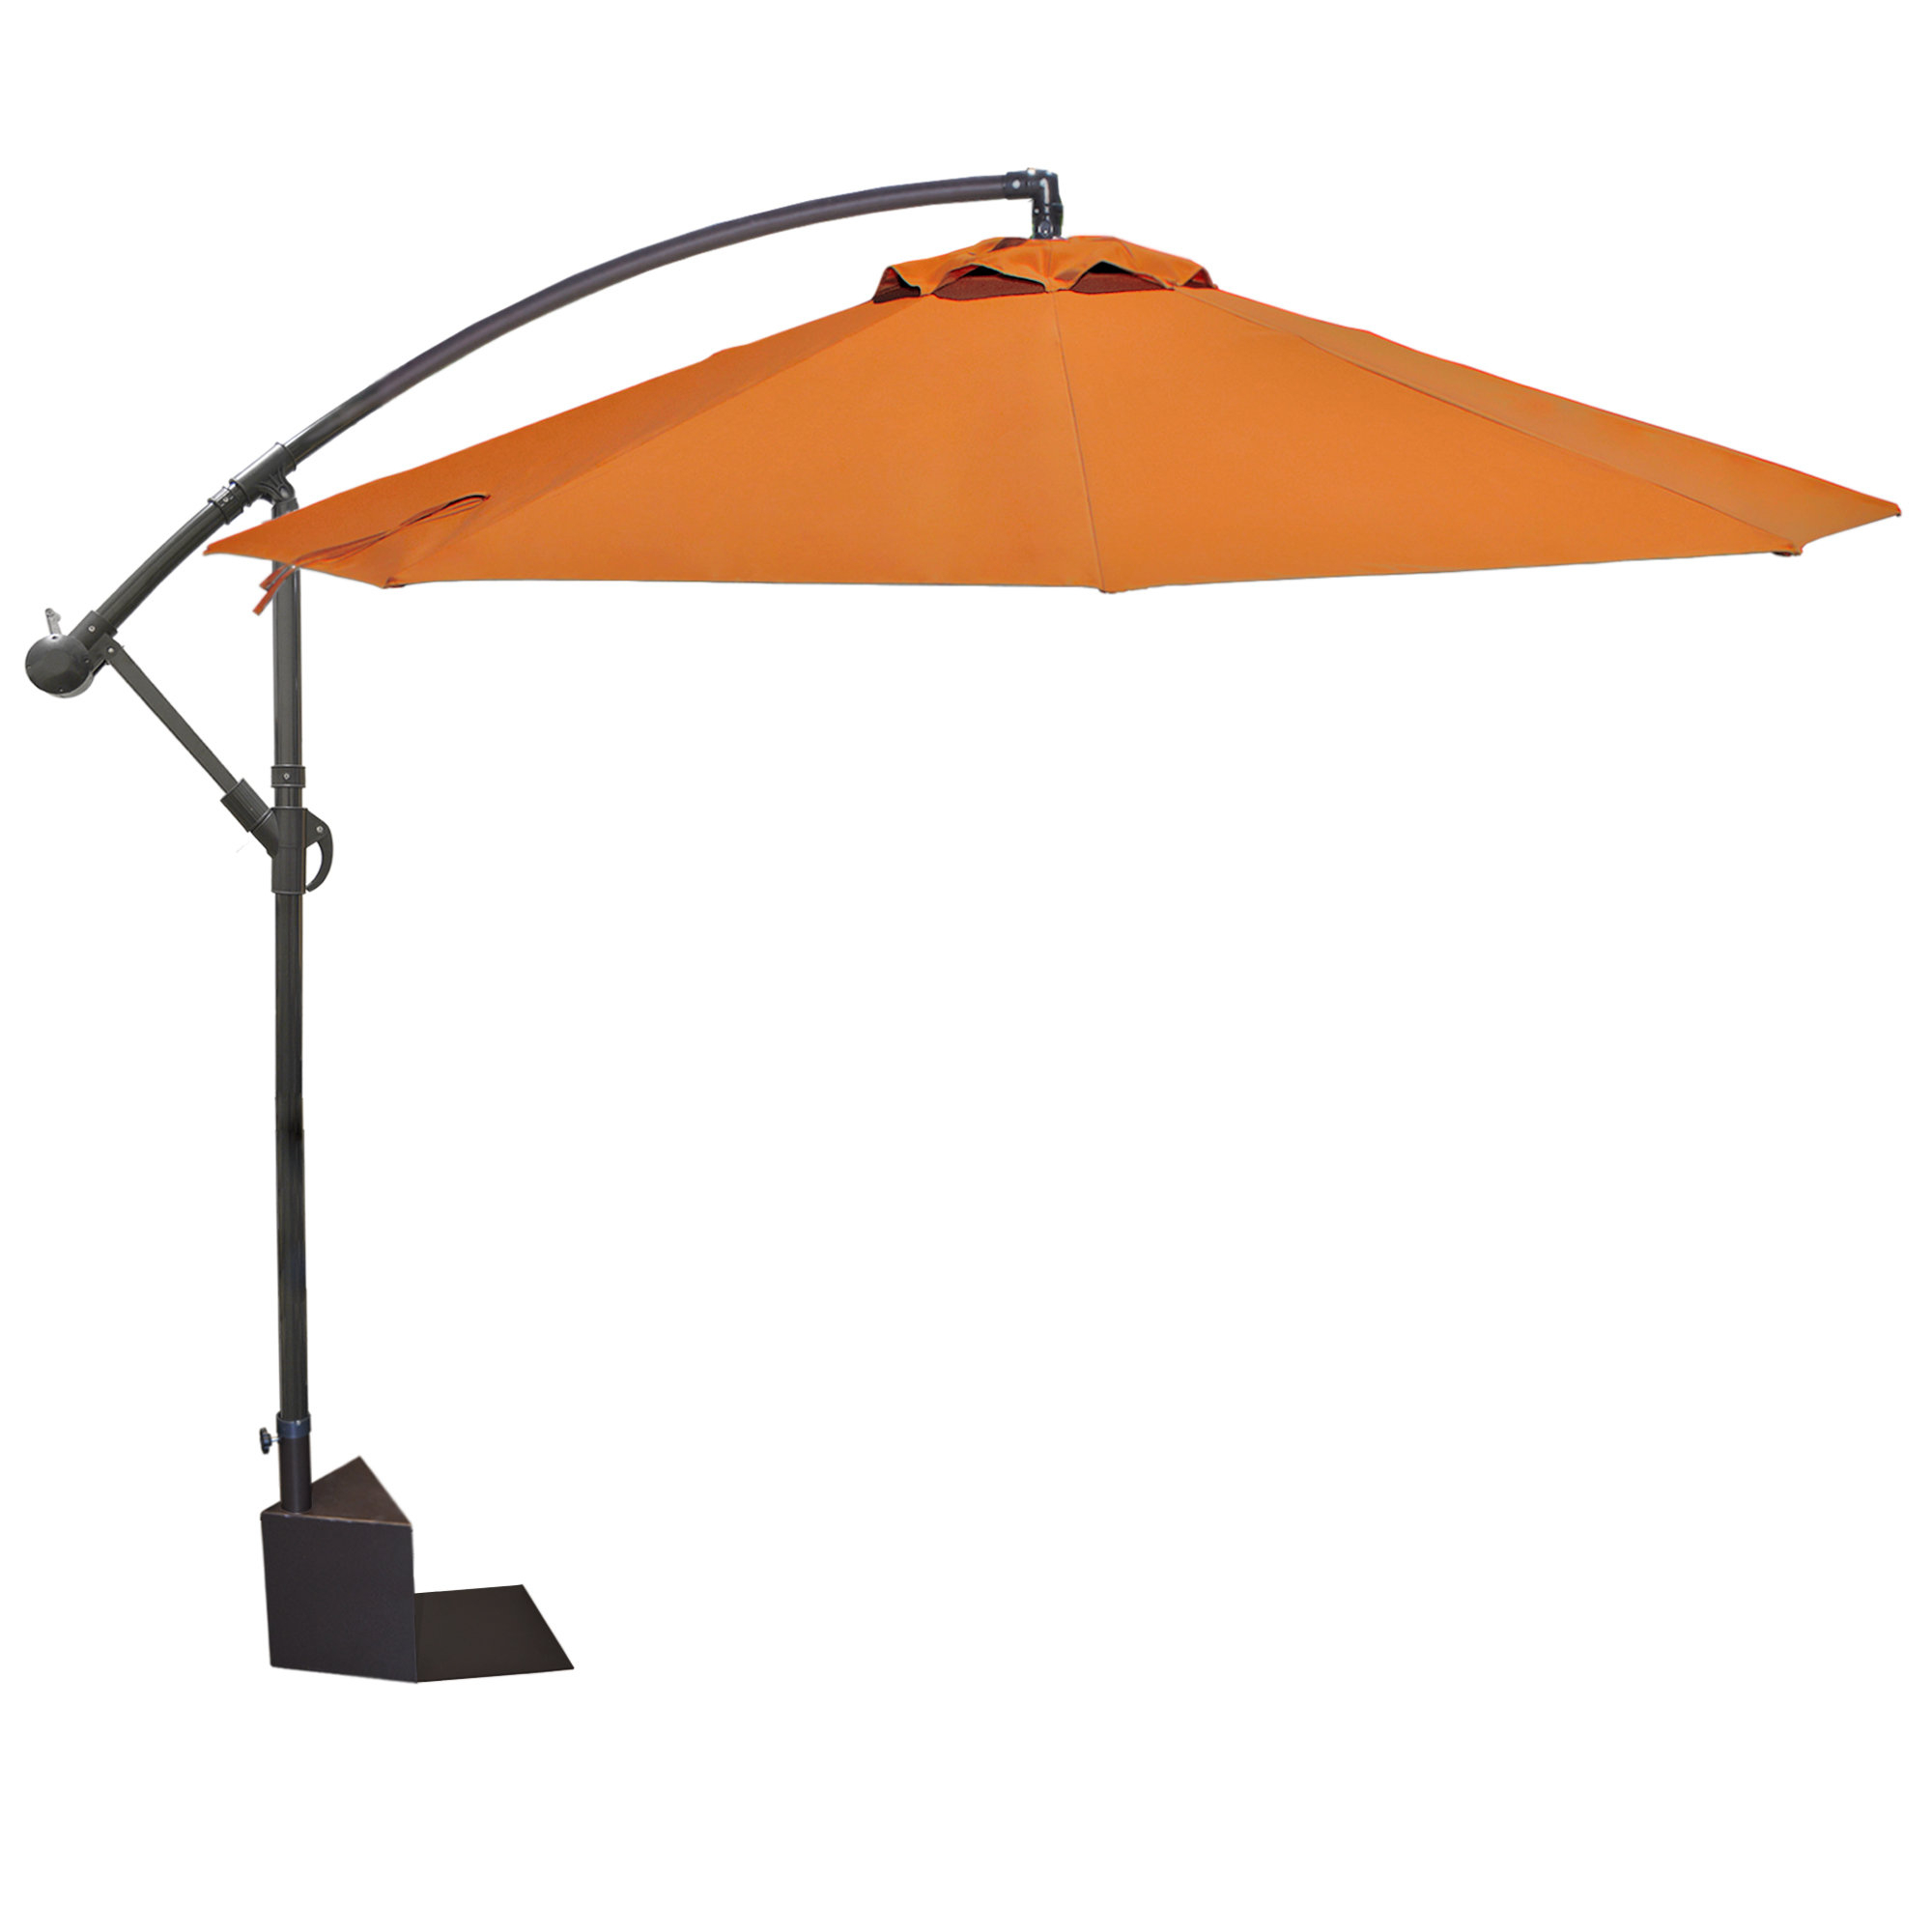 Famous Santiago 10' Cantilever Umbrella For Cockermouth Rotating Cantilever Umbrellas (View 15 of 20)